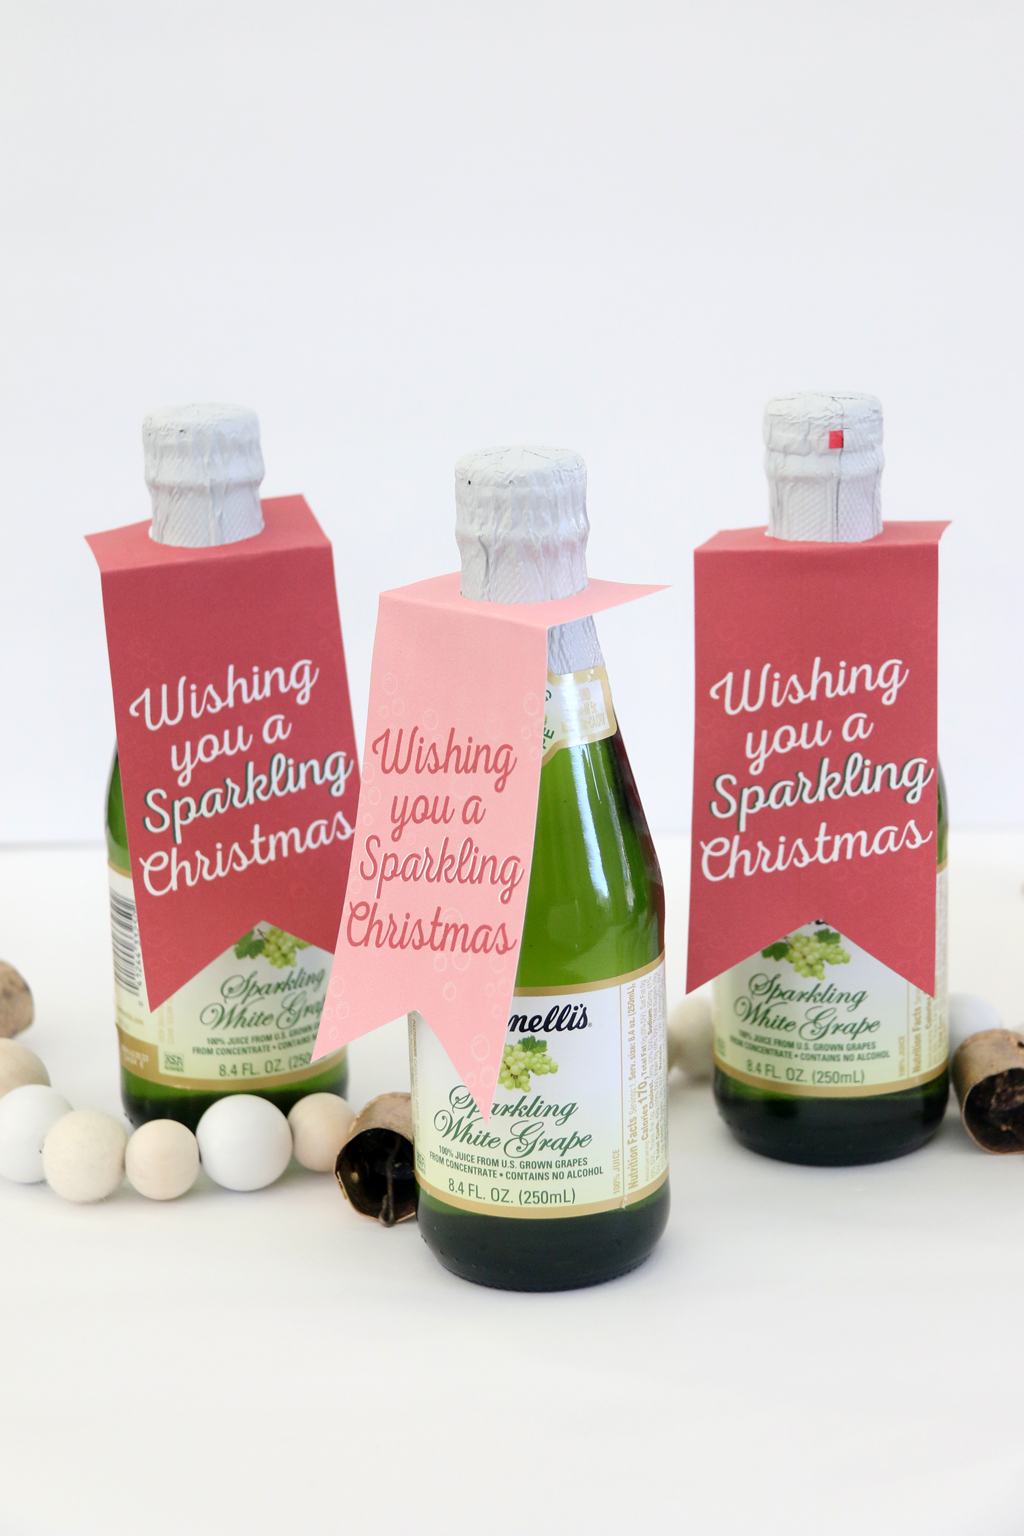 Wishing you a Sparkling Christmas printable tag on a bottle of sparkling cider.